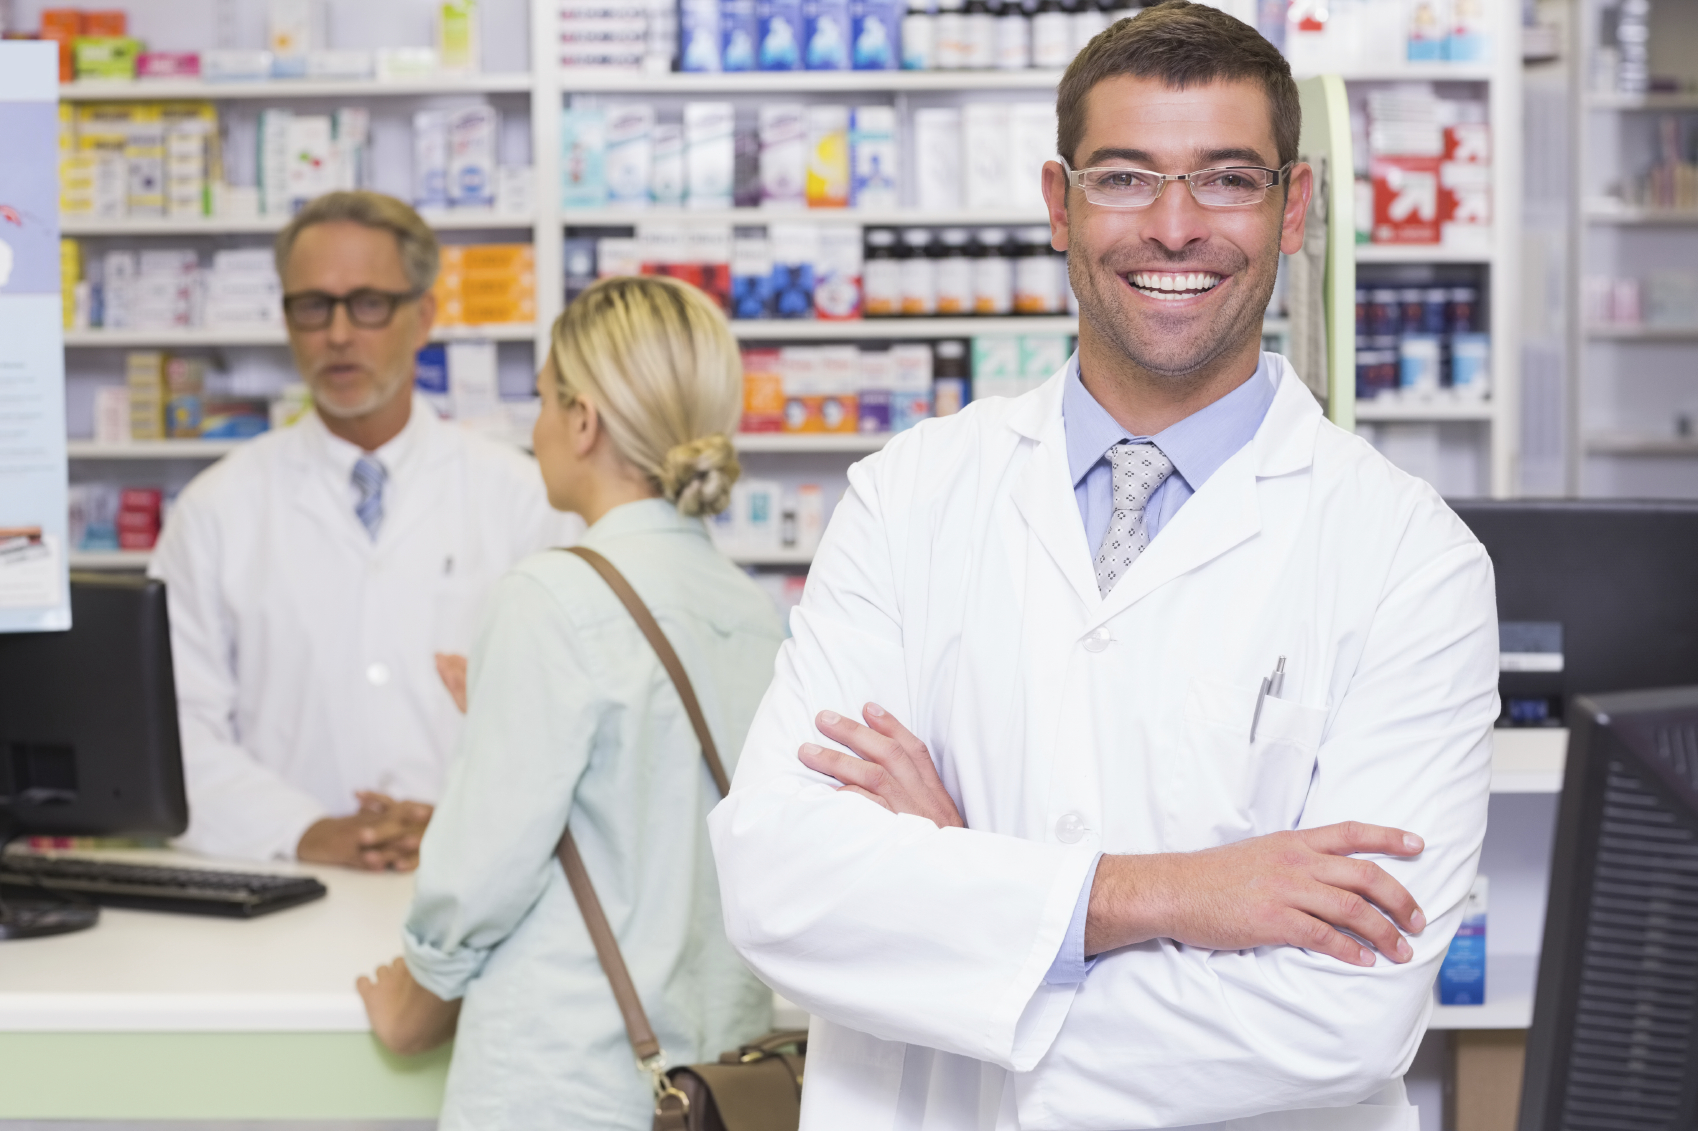 iStock_000063298009_Medium Male Pharmacist.jpg